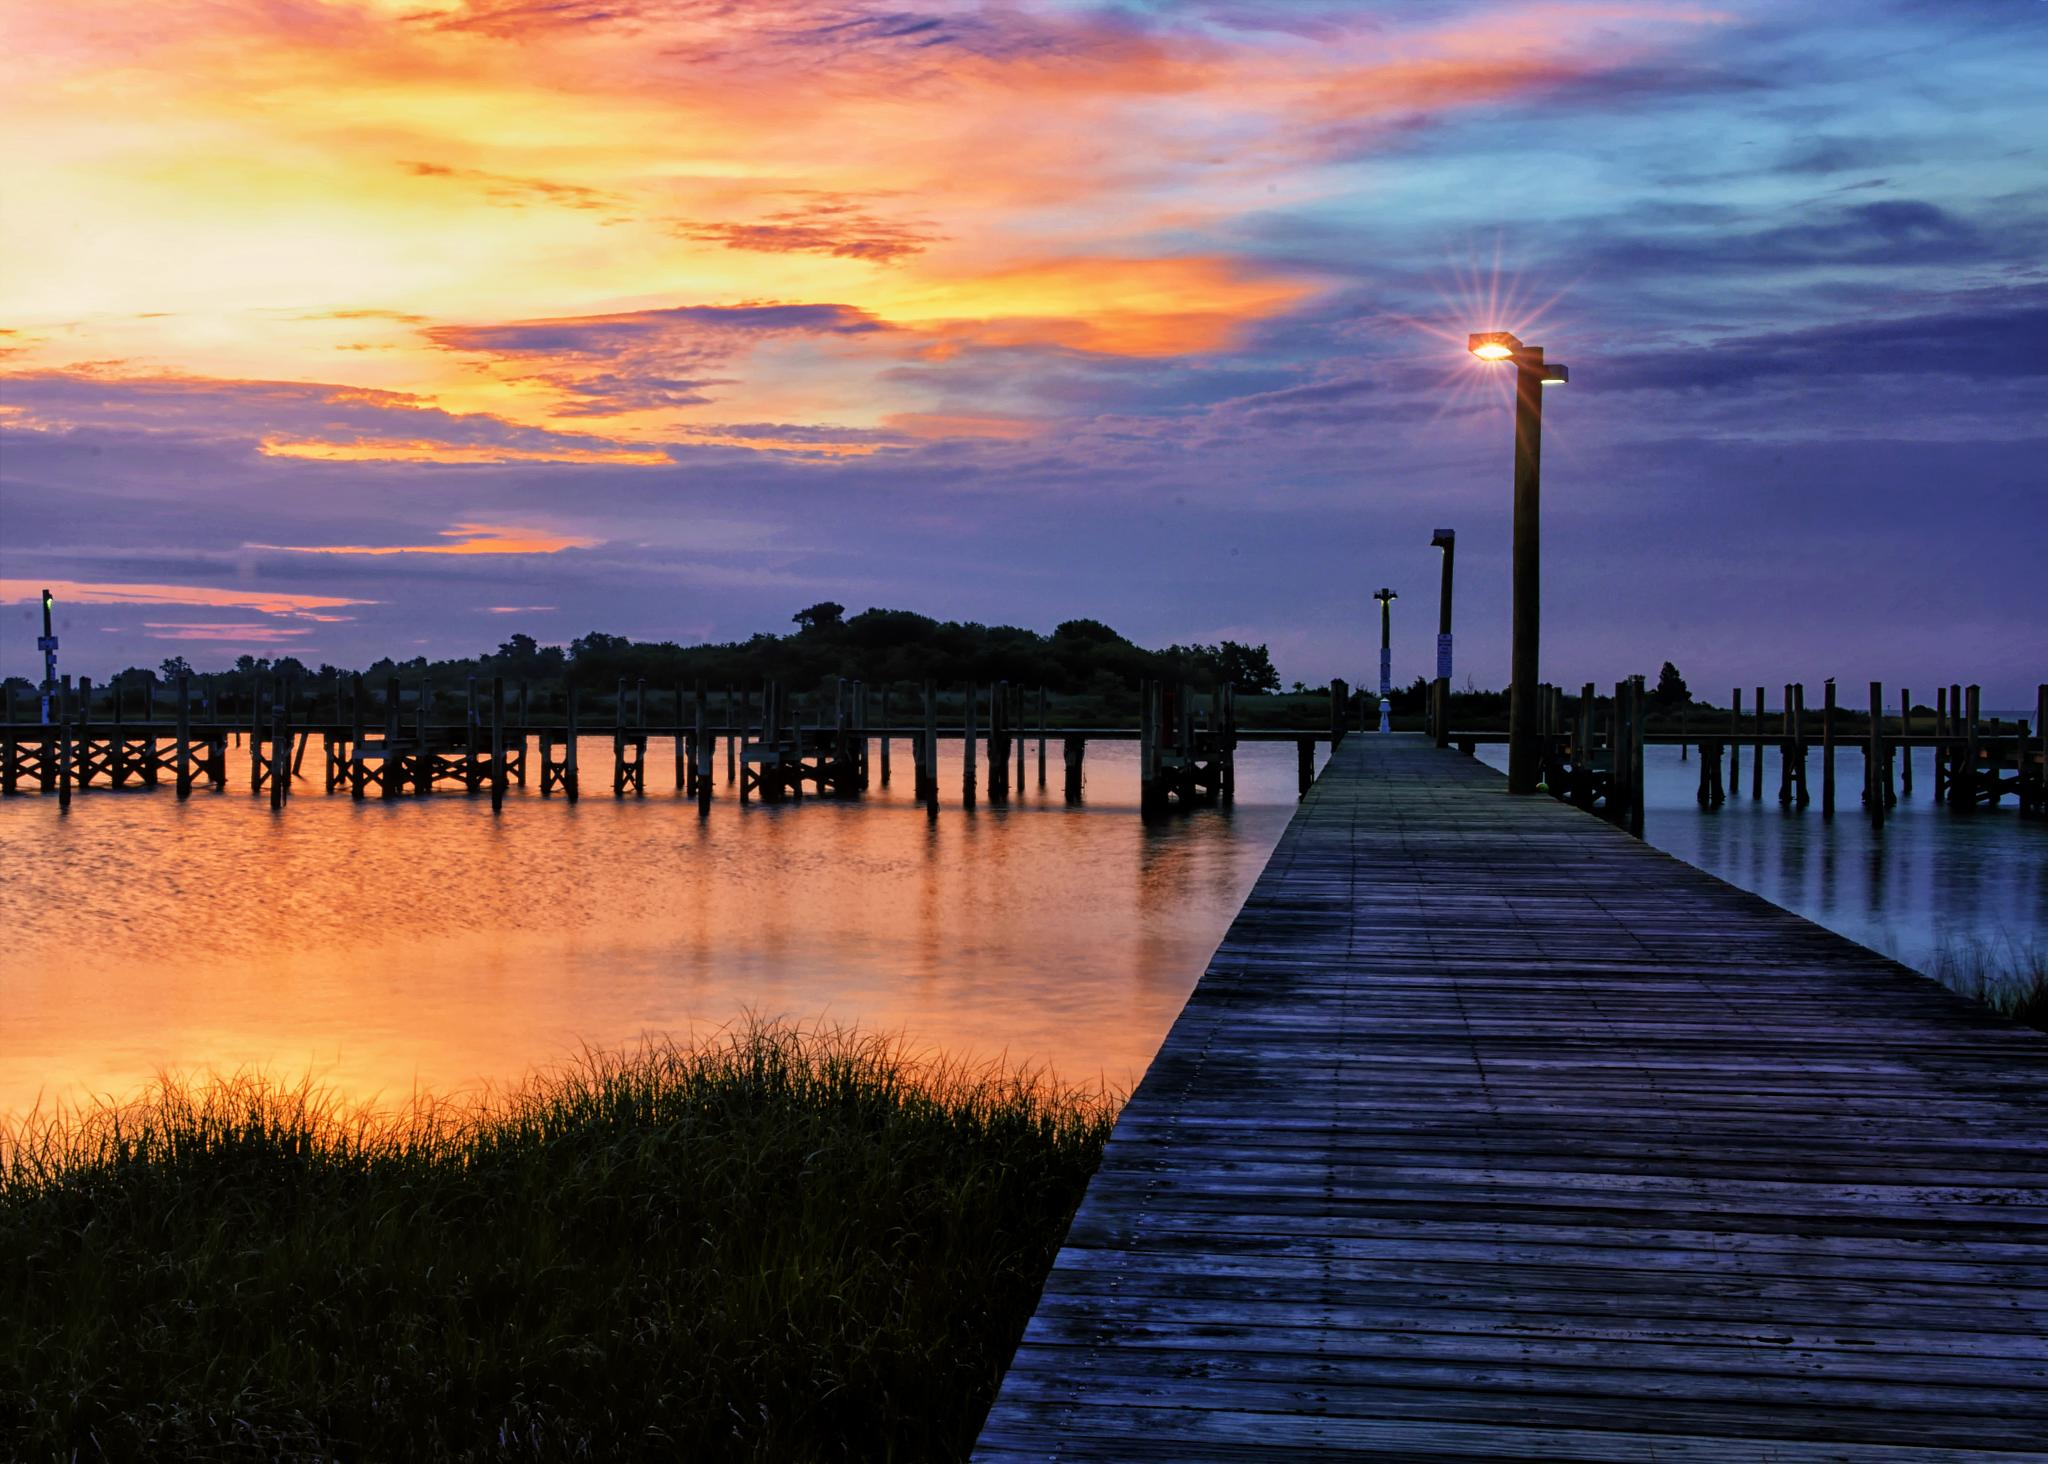 Morning at the Point by James Gramm